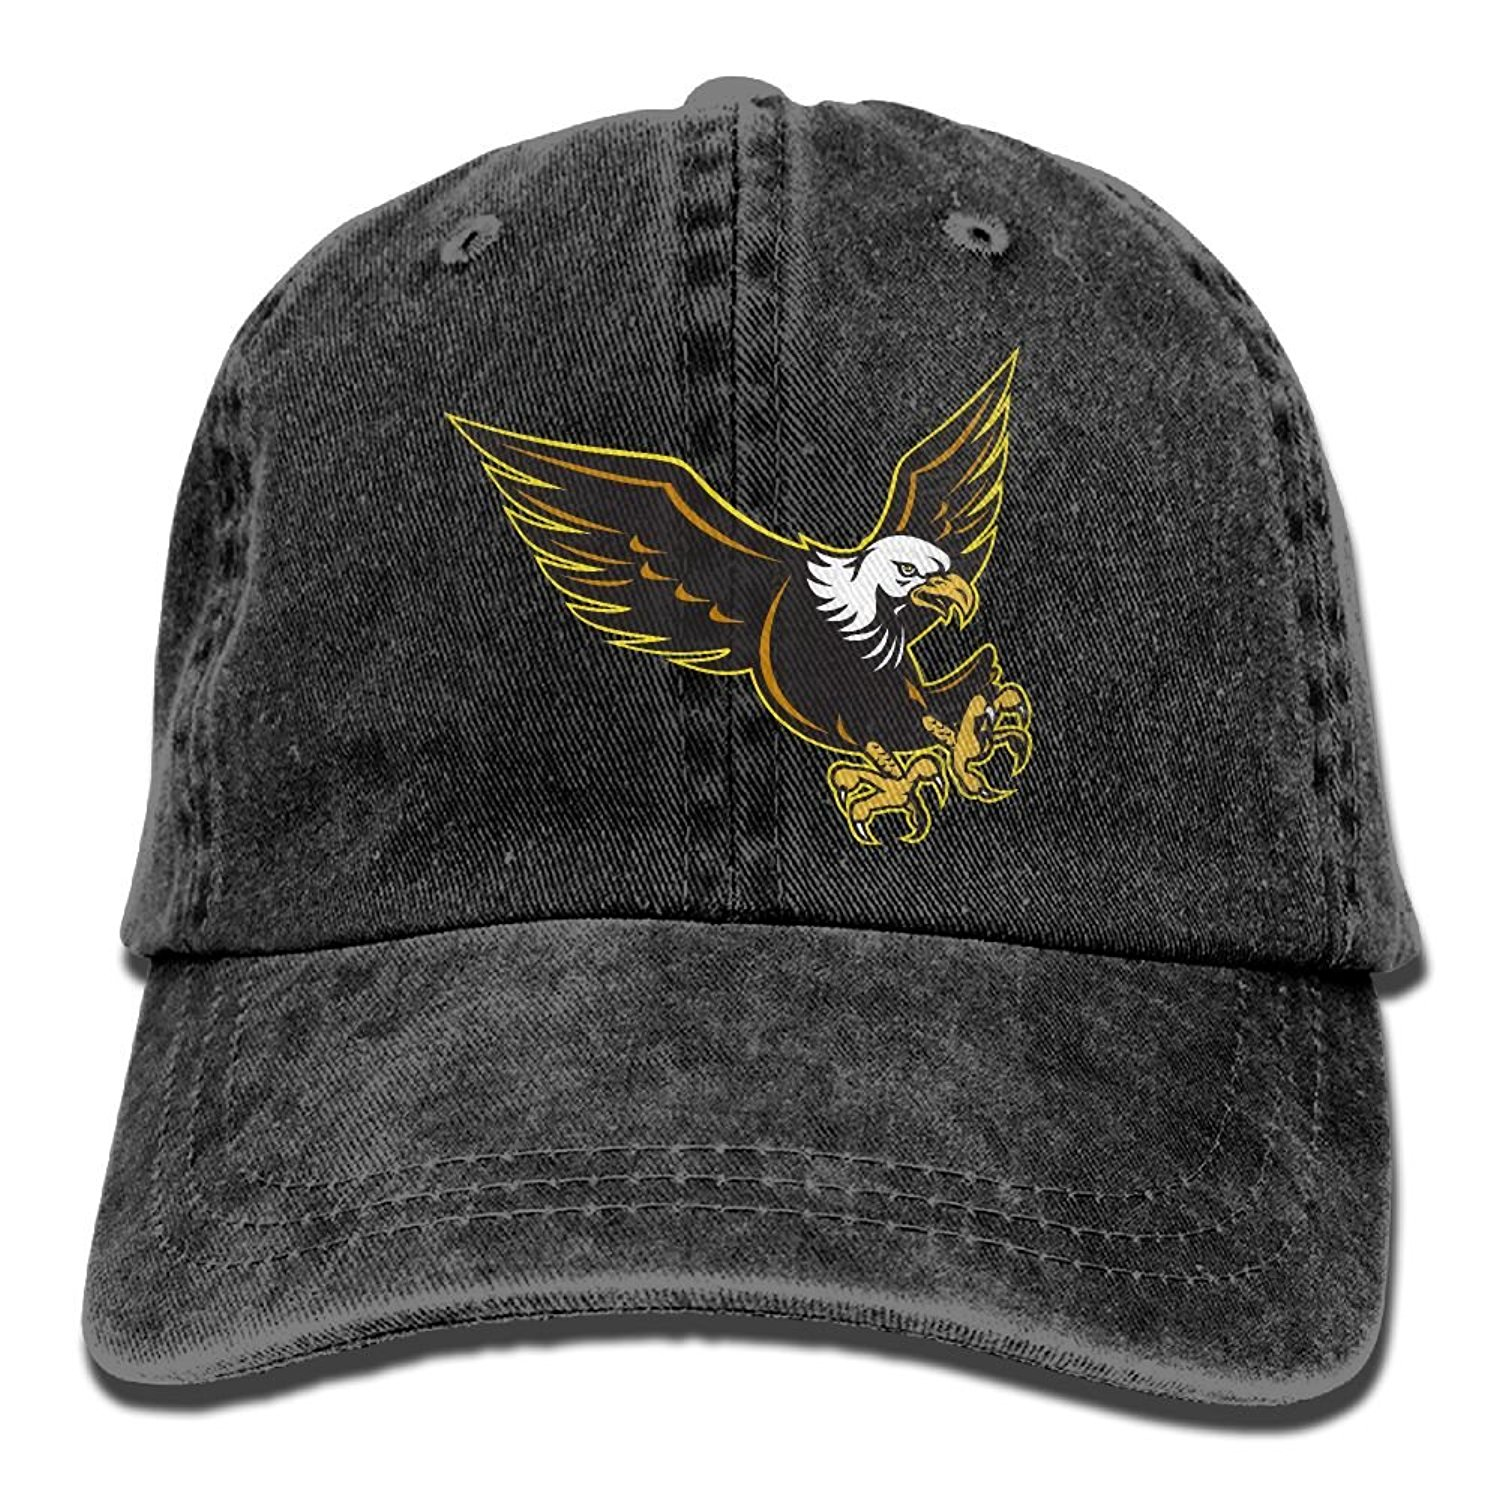 dea76b08df6d Cheap Hats American Eagle, find Hats American Eagle deals on line at ...